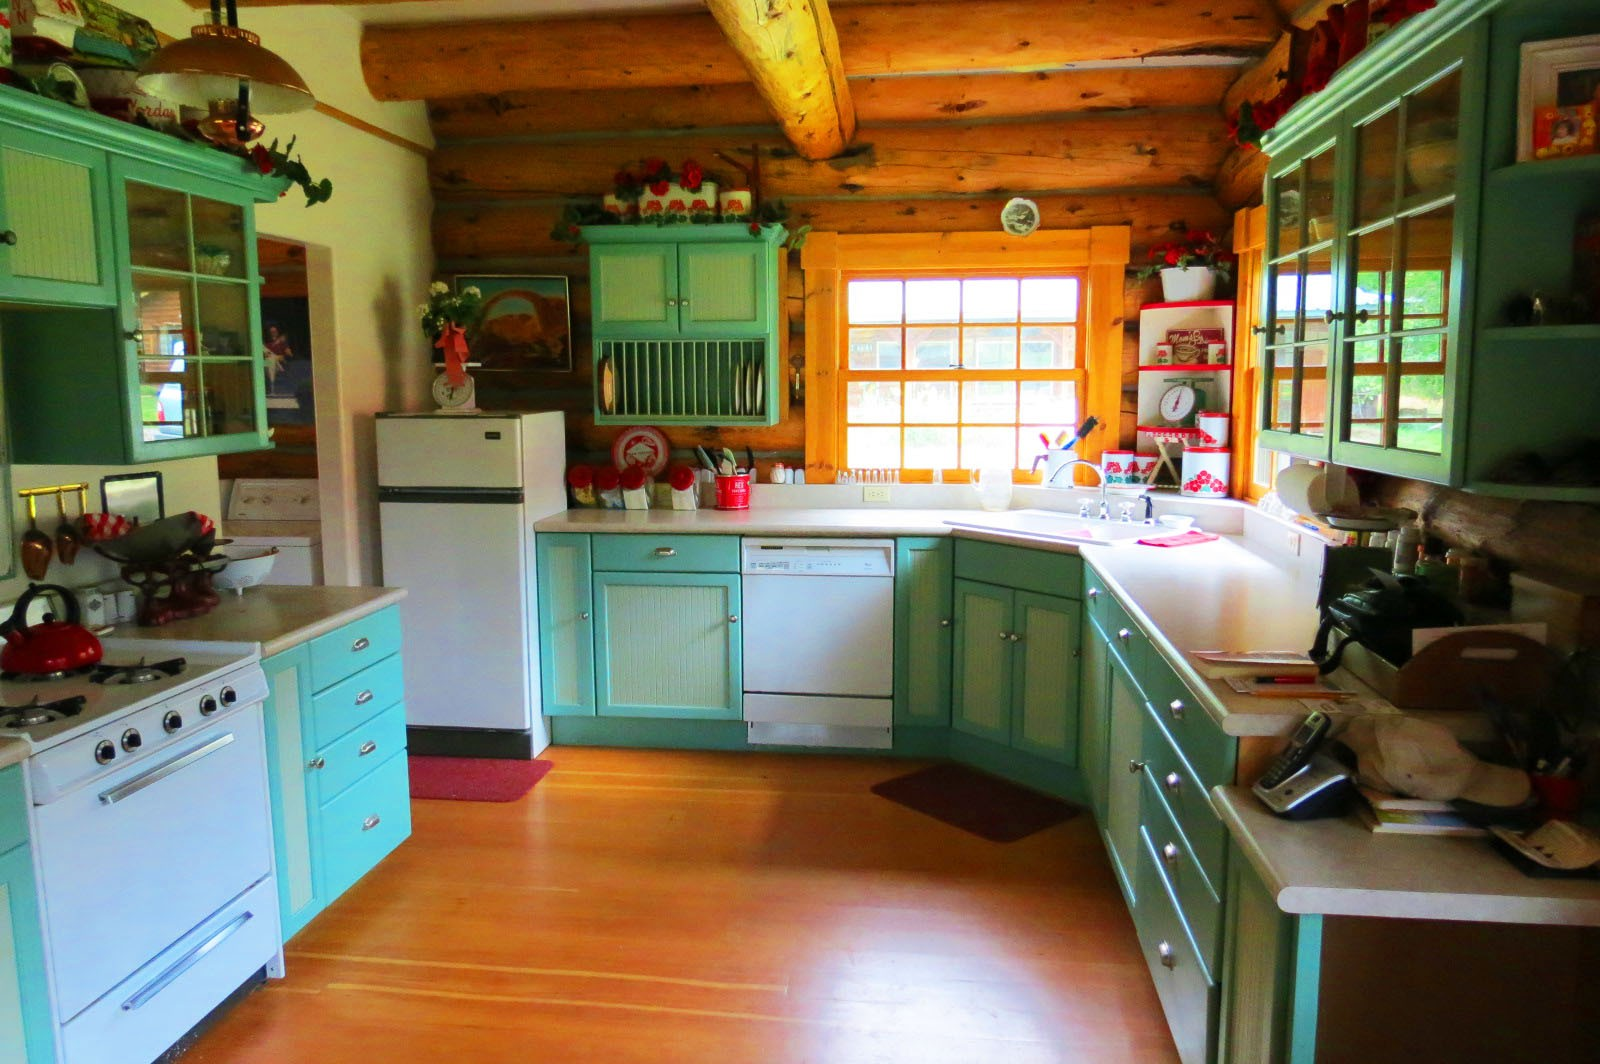 Minne Cr kitchen 1